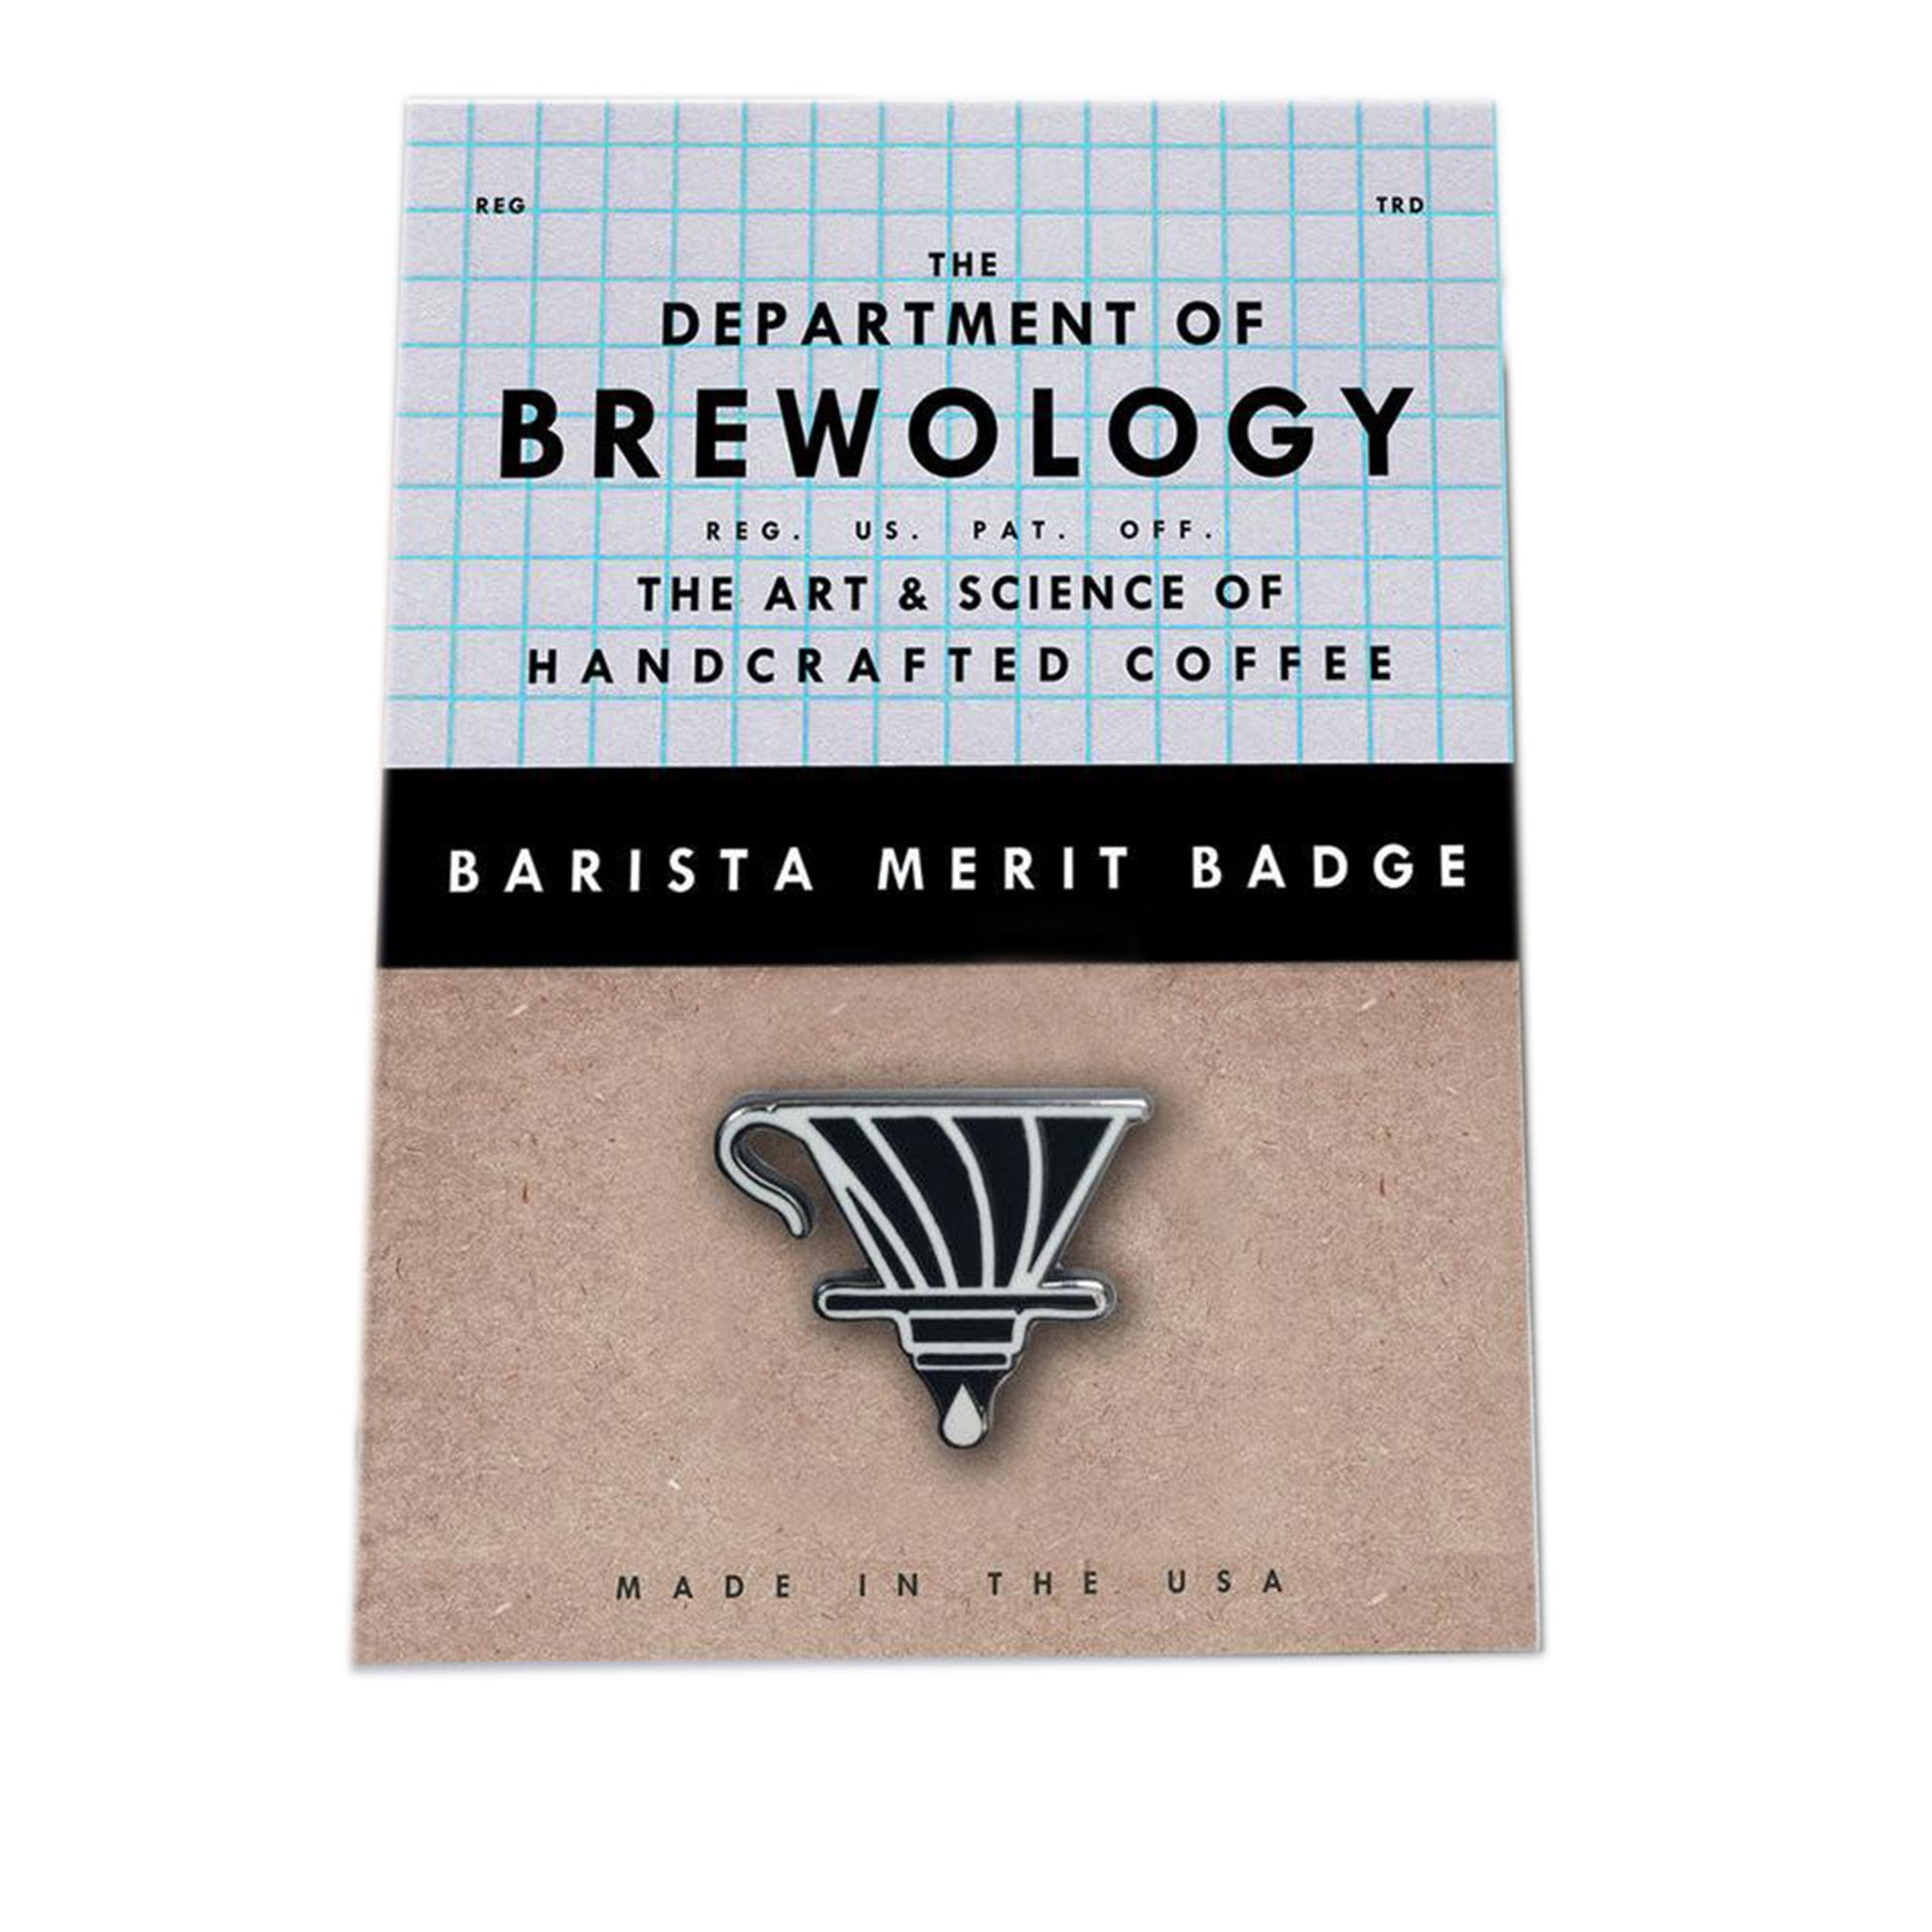 Barista Merit Badge - V60 - Dept of Brewology - Espresso Gear